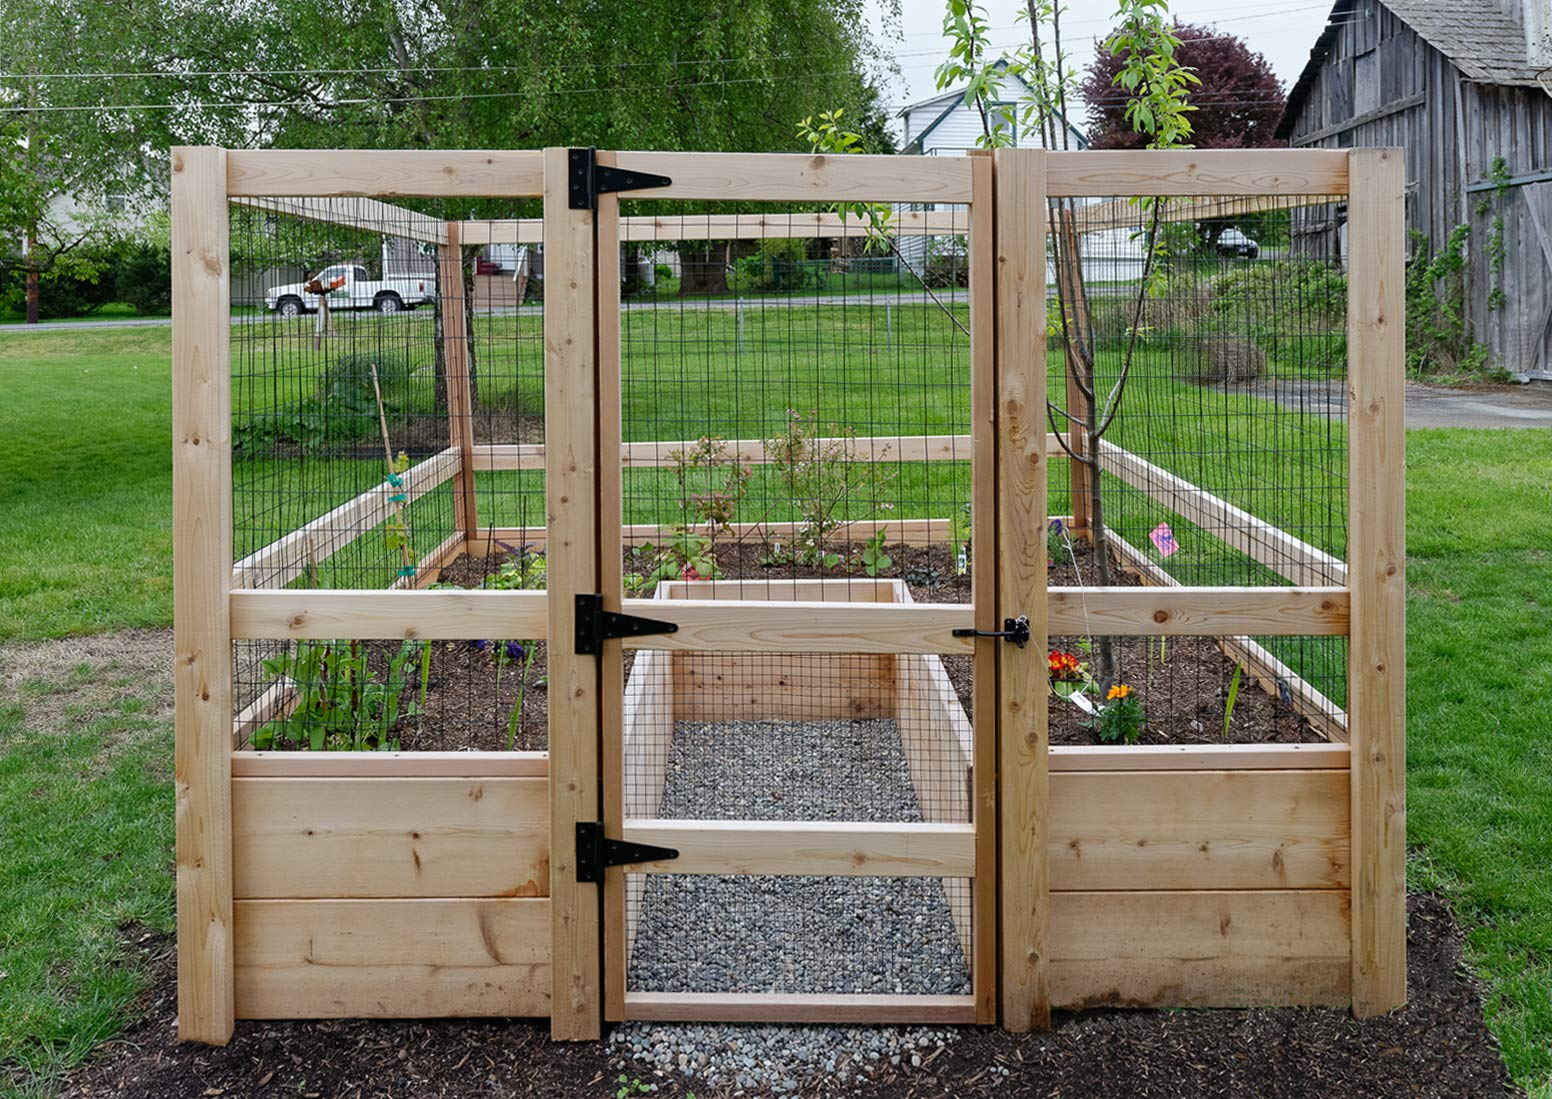 """Deer-Proof Just Add Lumber Vegetable Garden Kit - 8'x8' 6 DOES NOT INCLUDE LUMBER. Kit includes everything but the lumber: 8 Raised bed brackets, black nylon netting for fencing/trellis, black vinyl-coated steel wire for gate, ceramic-coated rust resistant screws, plus all other required hardware and detailed instructions Buy your own rough lumber locally - Build the ultimate vegetable garden with this kit. Required rough construction lumber : (10) 2""""x10""""x8'; (1) 2""""x10""""x6'; (6) 2""""x4""""x12'; (2) 2""""x4""""x8'; (3) 2""""x2""""x12'; (1) 2""""x2""""x8'; (4)1-5/8""""x1-5/8""""x12' (actual size). Note: the lumber boards will need to be further cut into the sizes described in the assembly instructions Gated garden keeps out deer, rabbits and dogs"""